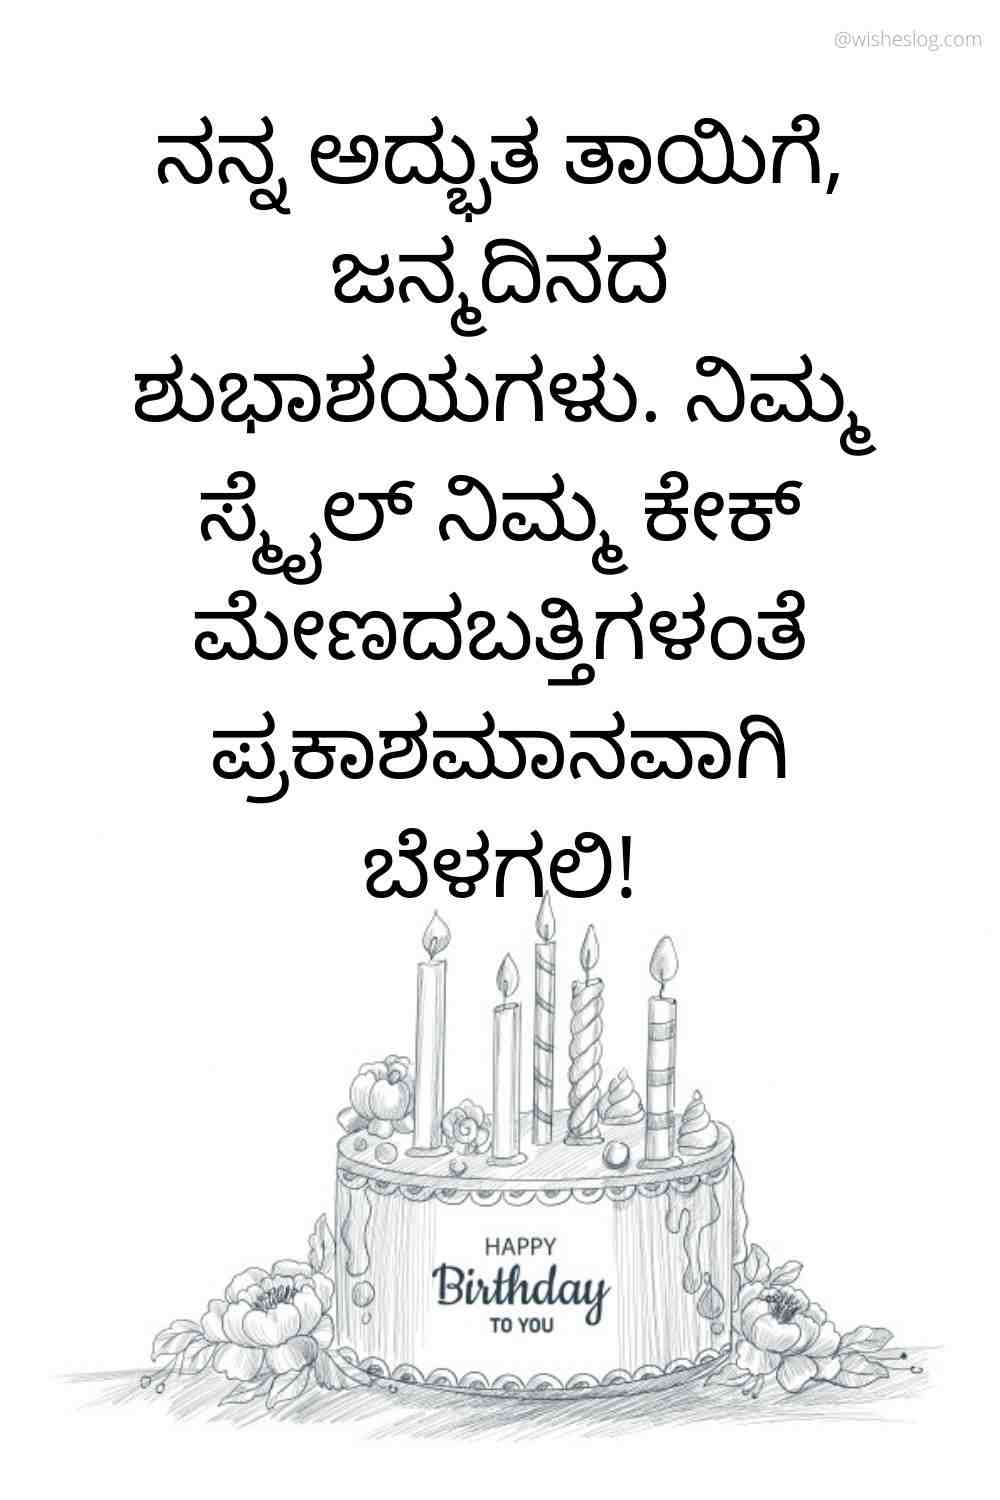 happy birthday images in kannada for mom